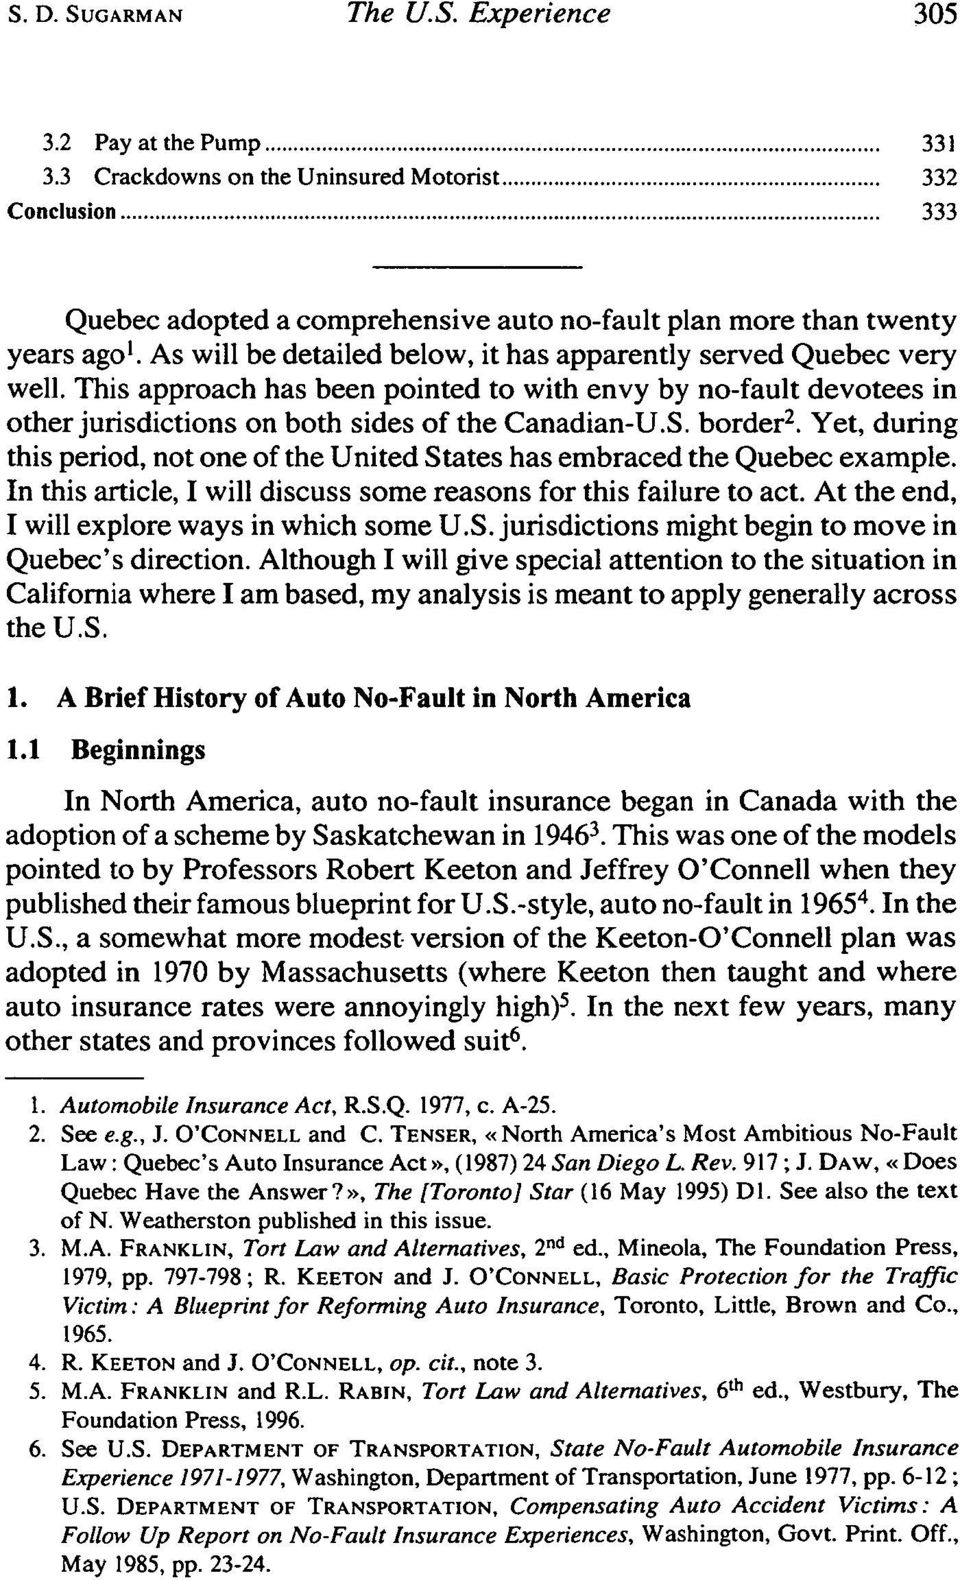 As will be detailed below, it has apparently served Quebec very well. This approach has been pointed to with envy by no-fault devotees in other jurisdictions on both sides of the Canadian-U.S.